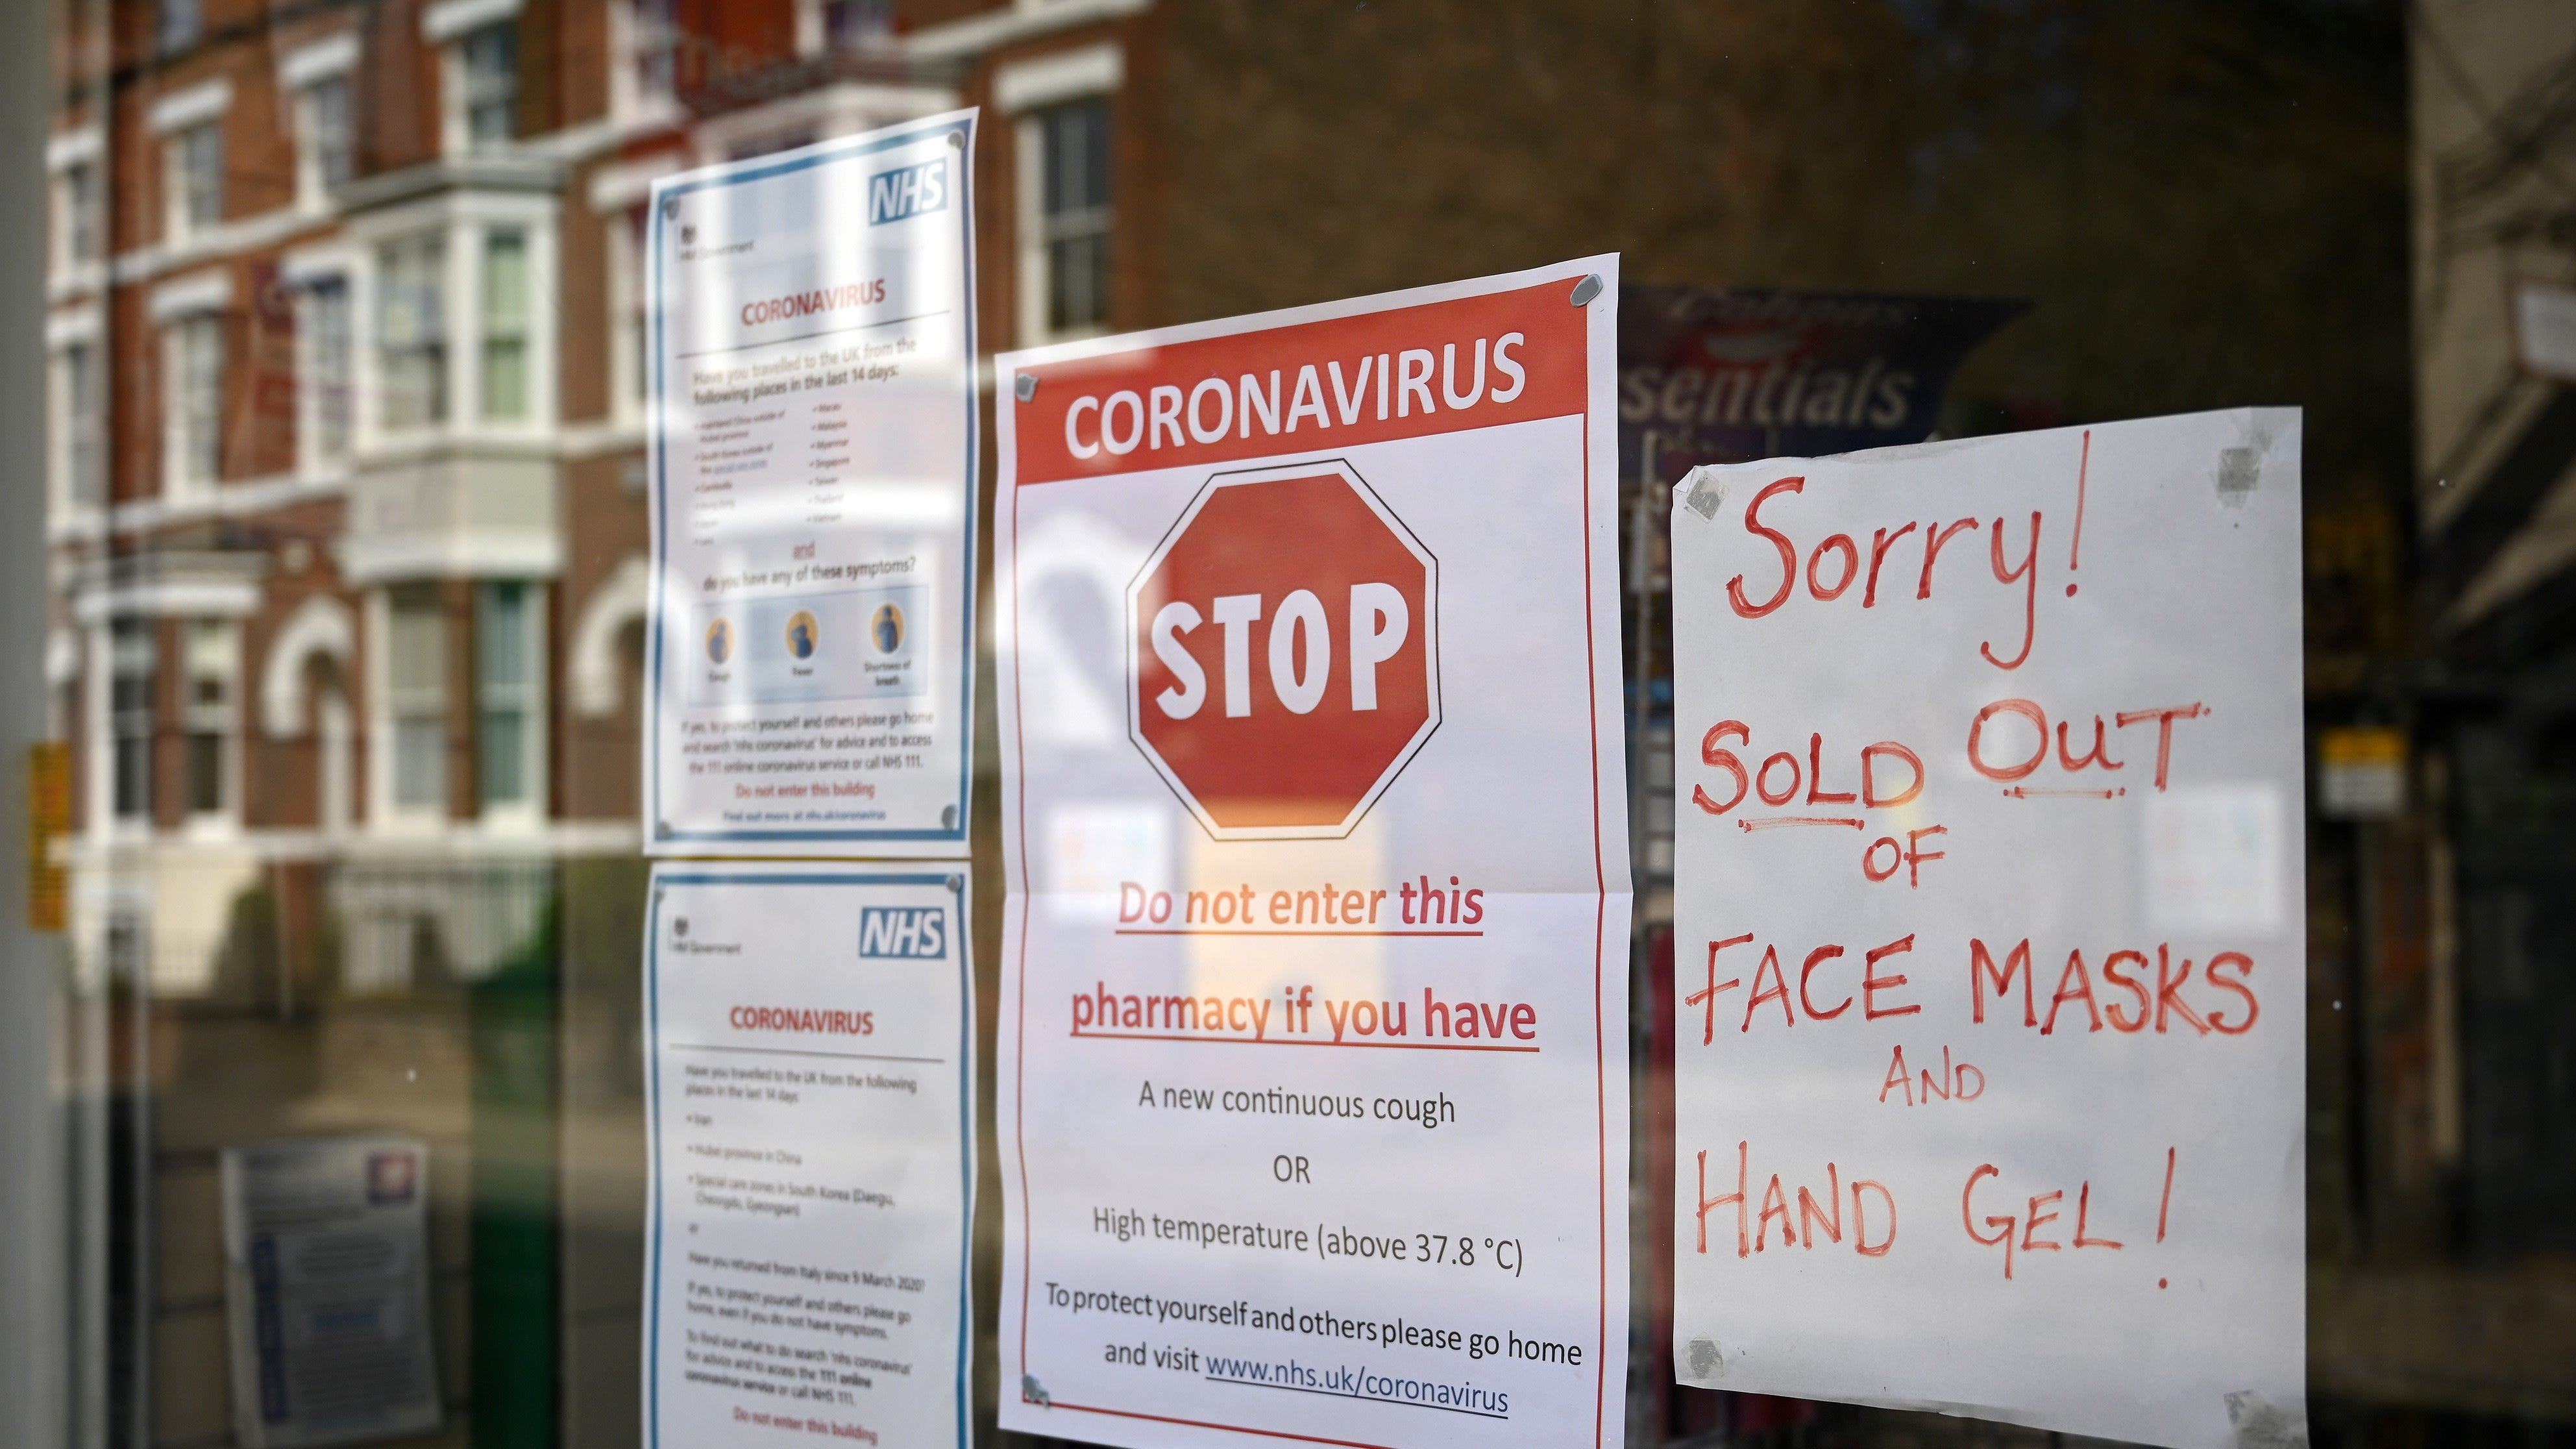 Researchers Warn Of 'Wave' Of Neurological Illness Caused By The Coronavirus